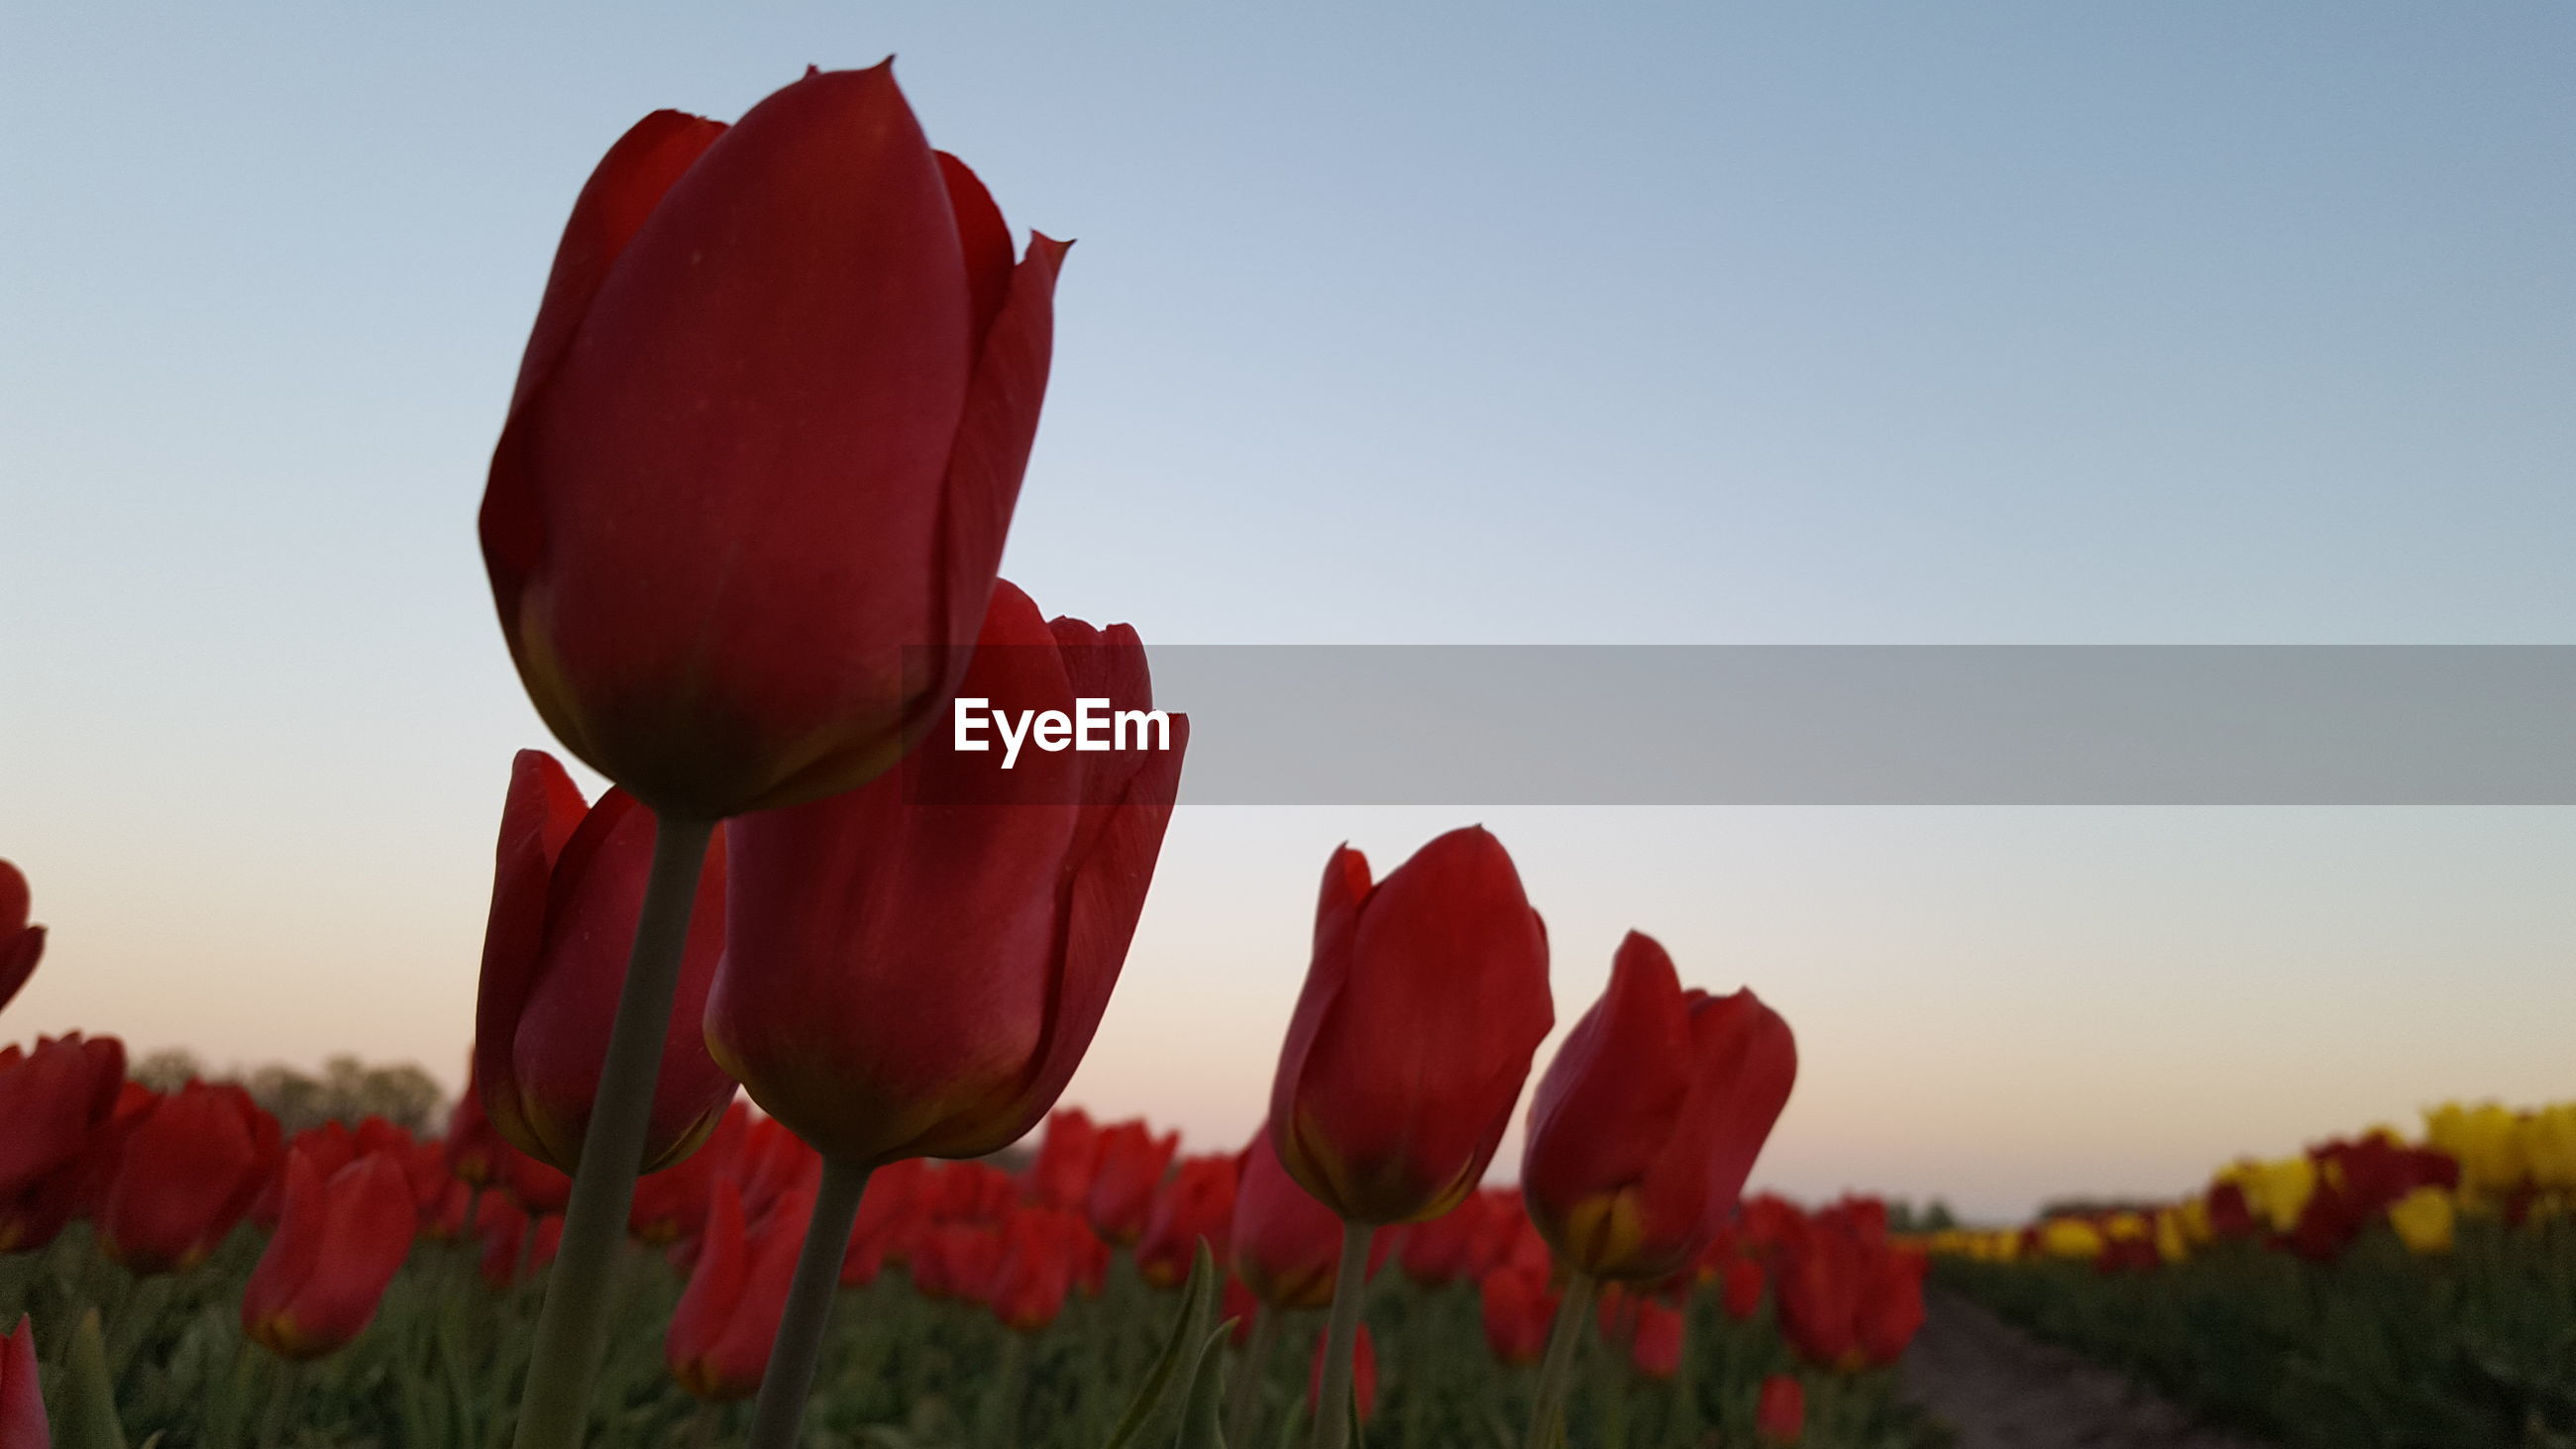 CLOSE-UP OF RED TULIP FLOWER AGAINST CLEAR SKY